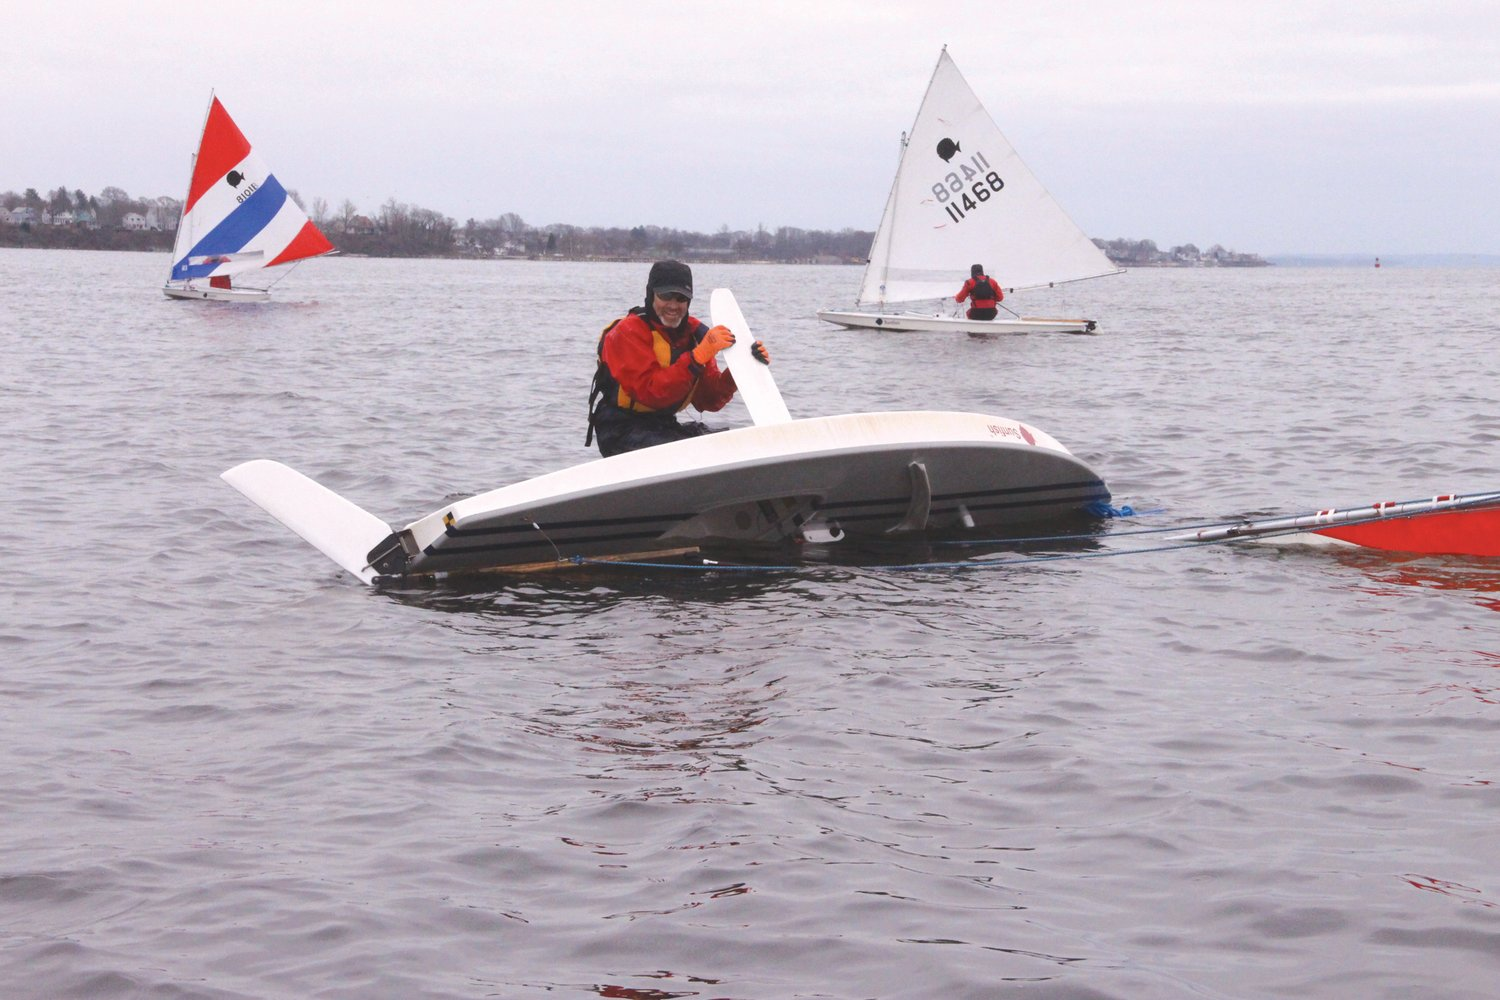 WORKING TO GET IT UPRIGHT: Rich Glucksman applies weight to the centerboard after taking a dunking while maneuvering for the first race. Fellow sailors remained close by to check on his condition.